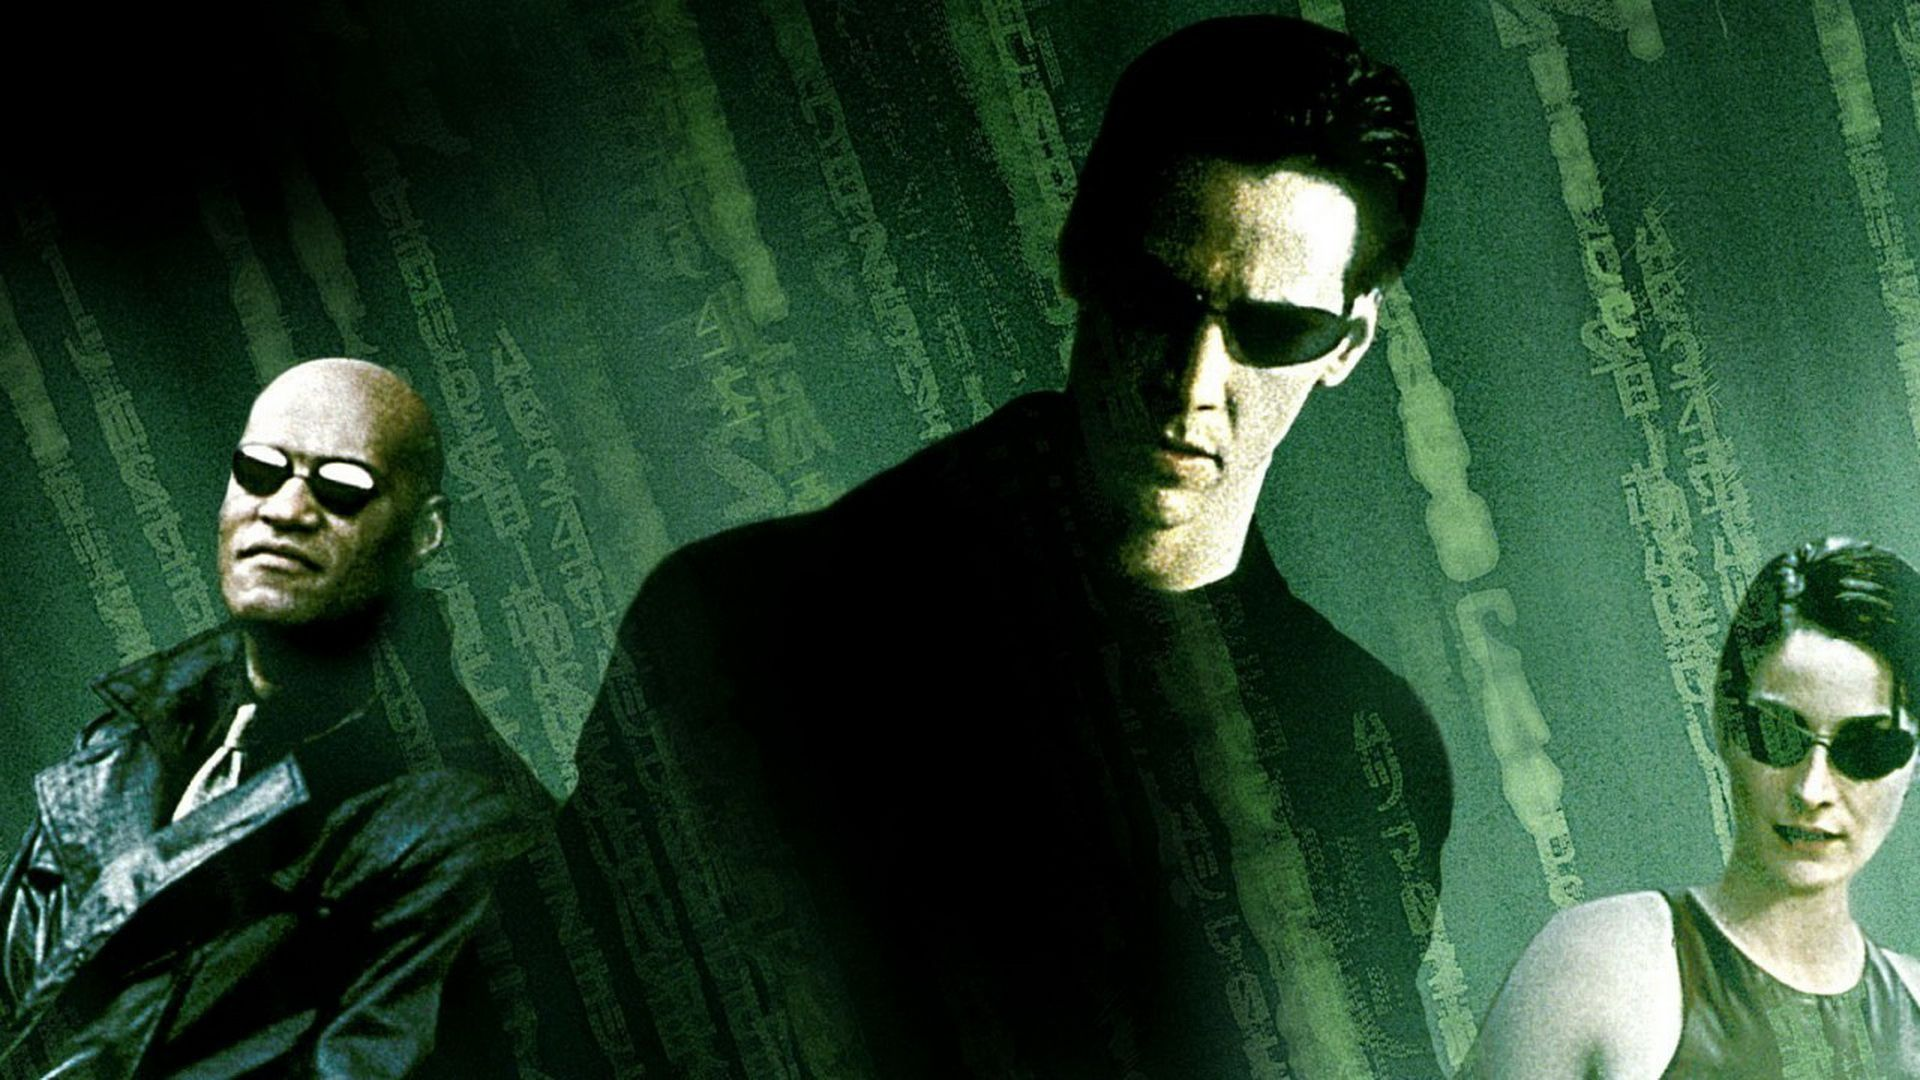 Matrix Gif Wallpapers Group 1920x1080